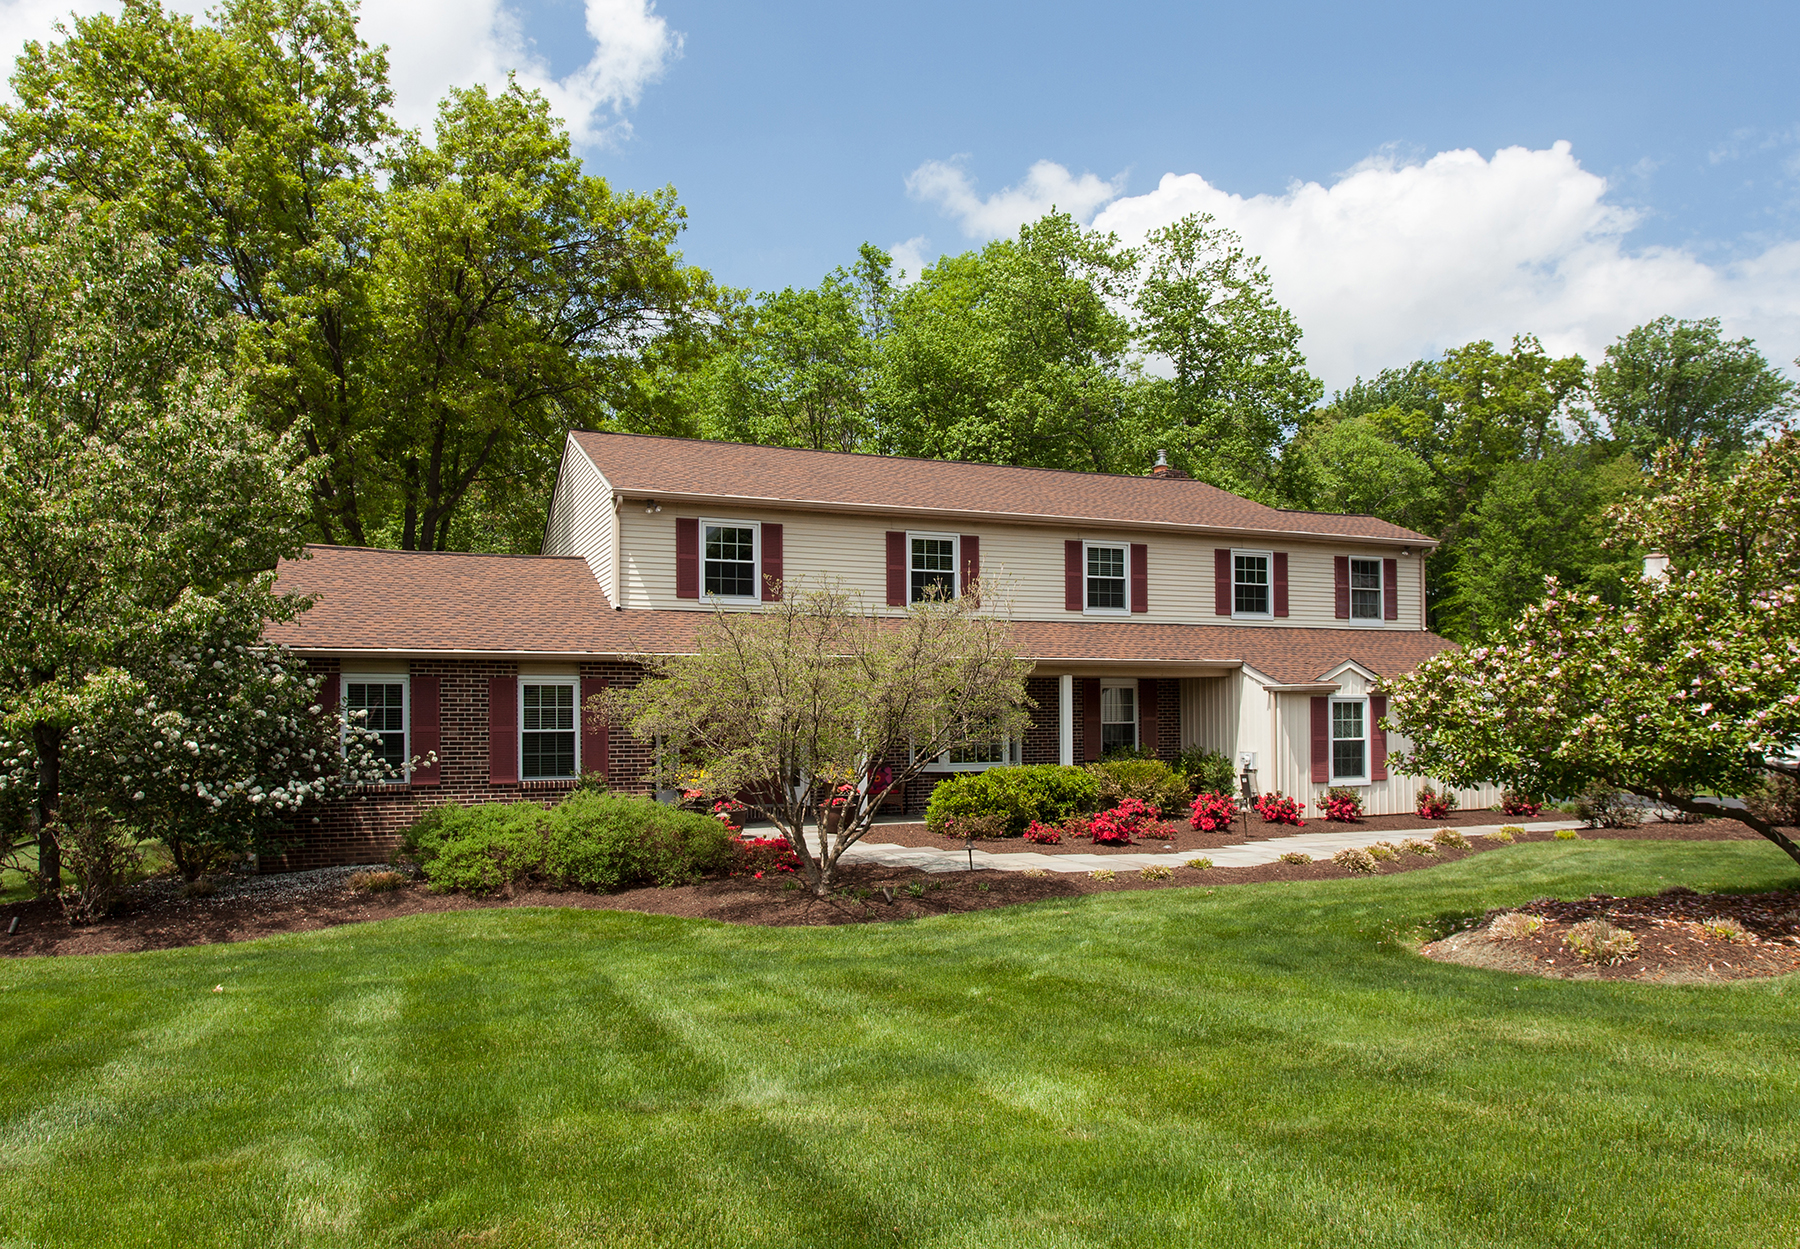 Single Family Home for Sale at Doylestown, PA 24 Settlers Drive Doylestown, Pennsylvania 18901 United States